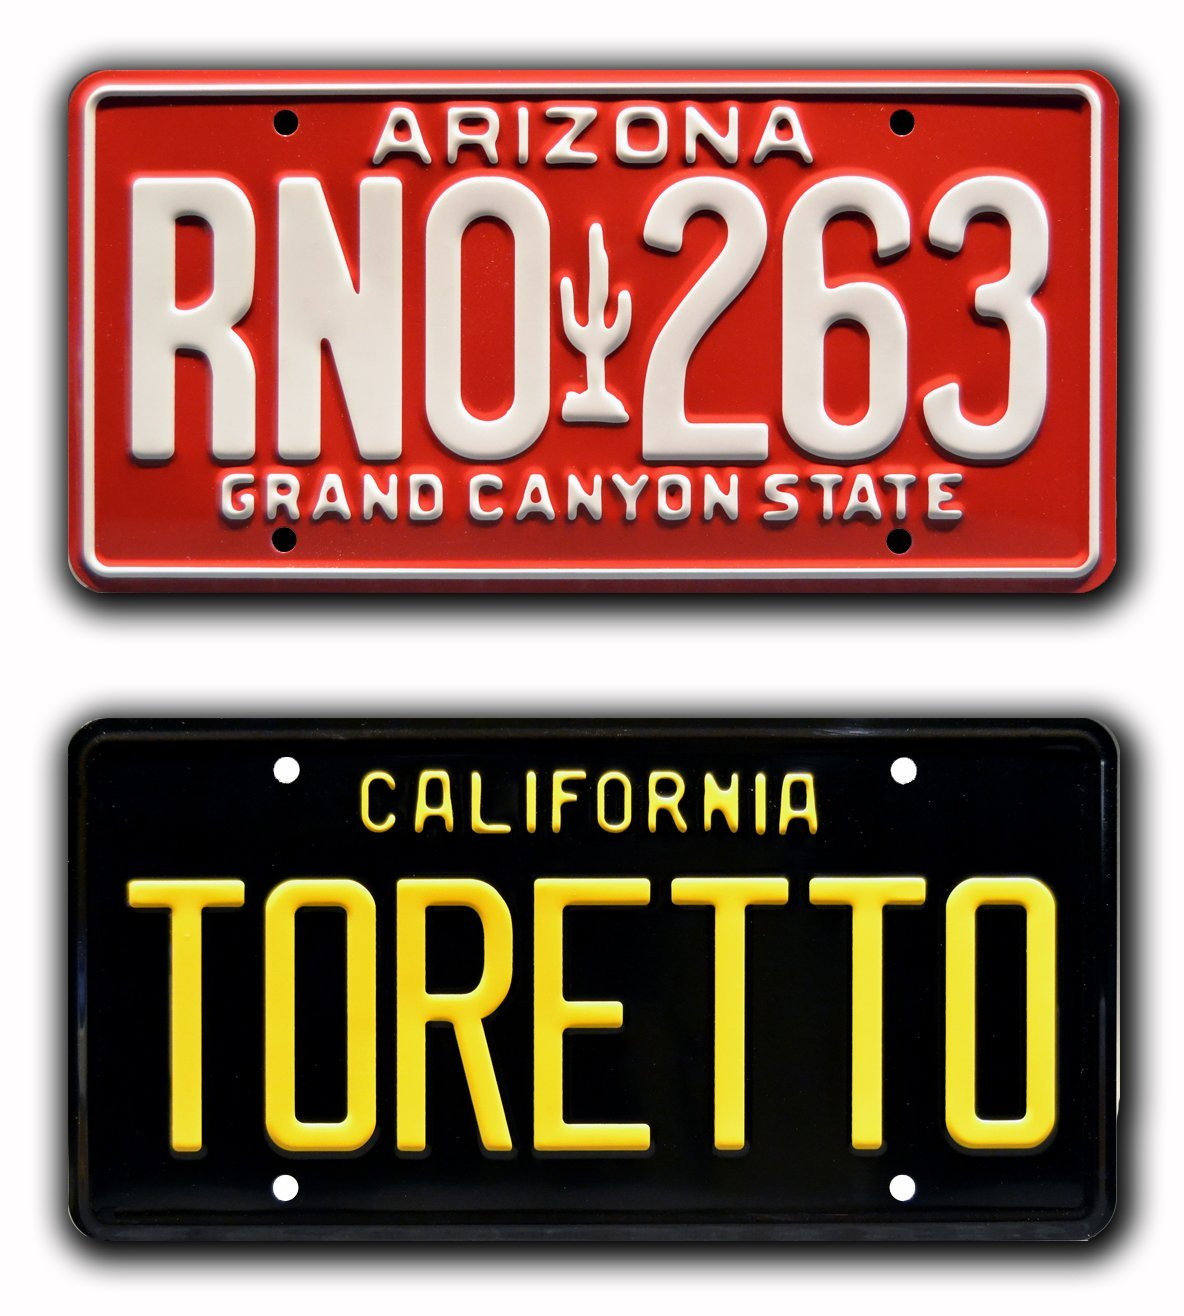 The Fast and The Furious | Toretto + RNO 263 | Metal Stamped Vanity Prop License Plate Combo Celebrity Machines